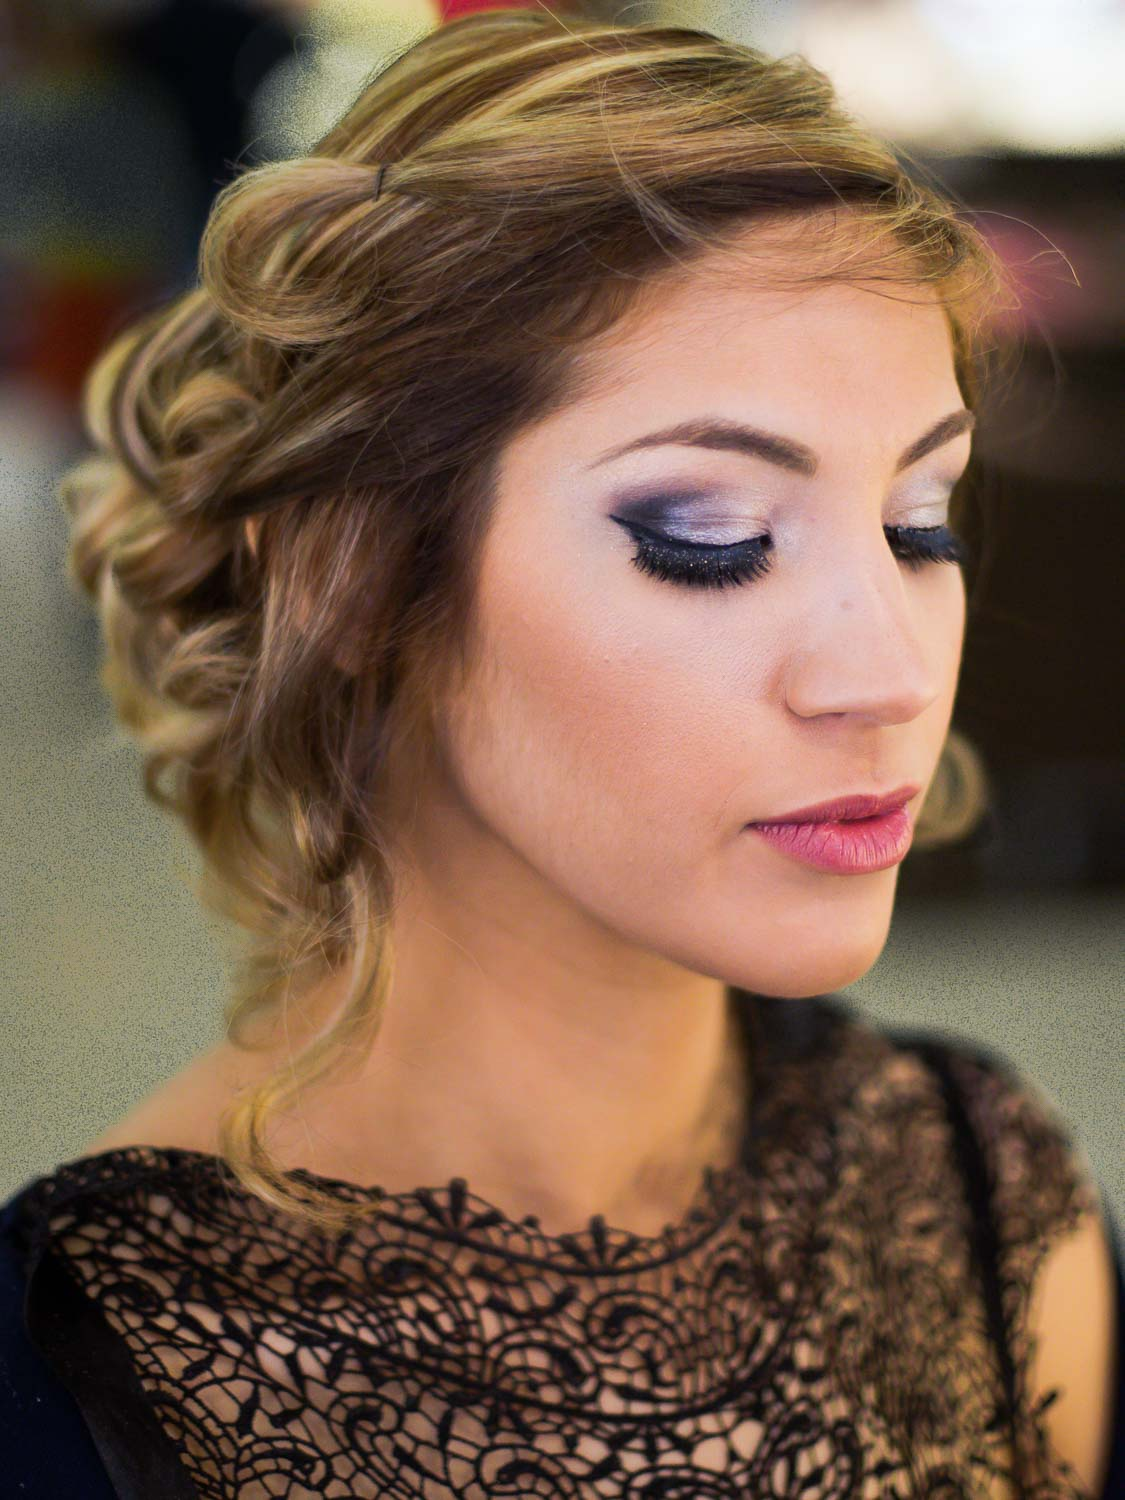 photographe mariage montpellier hd08